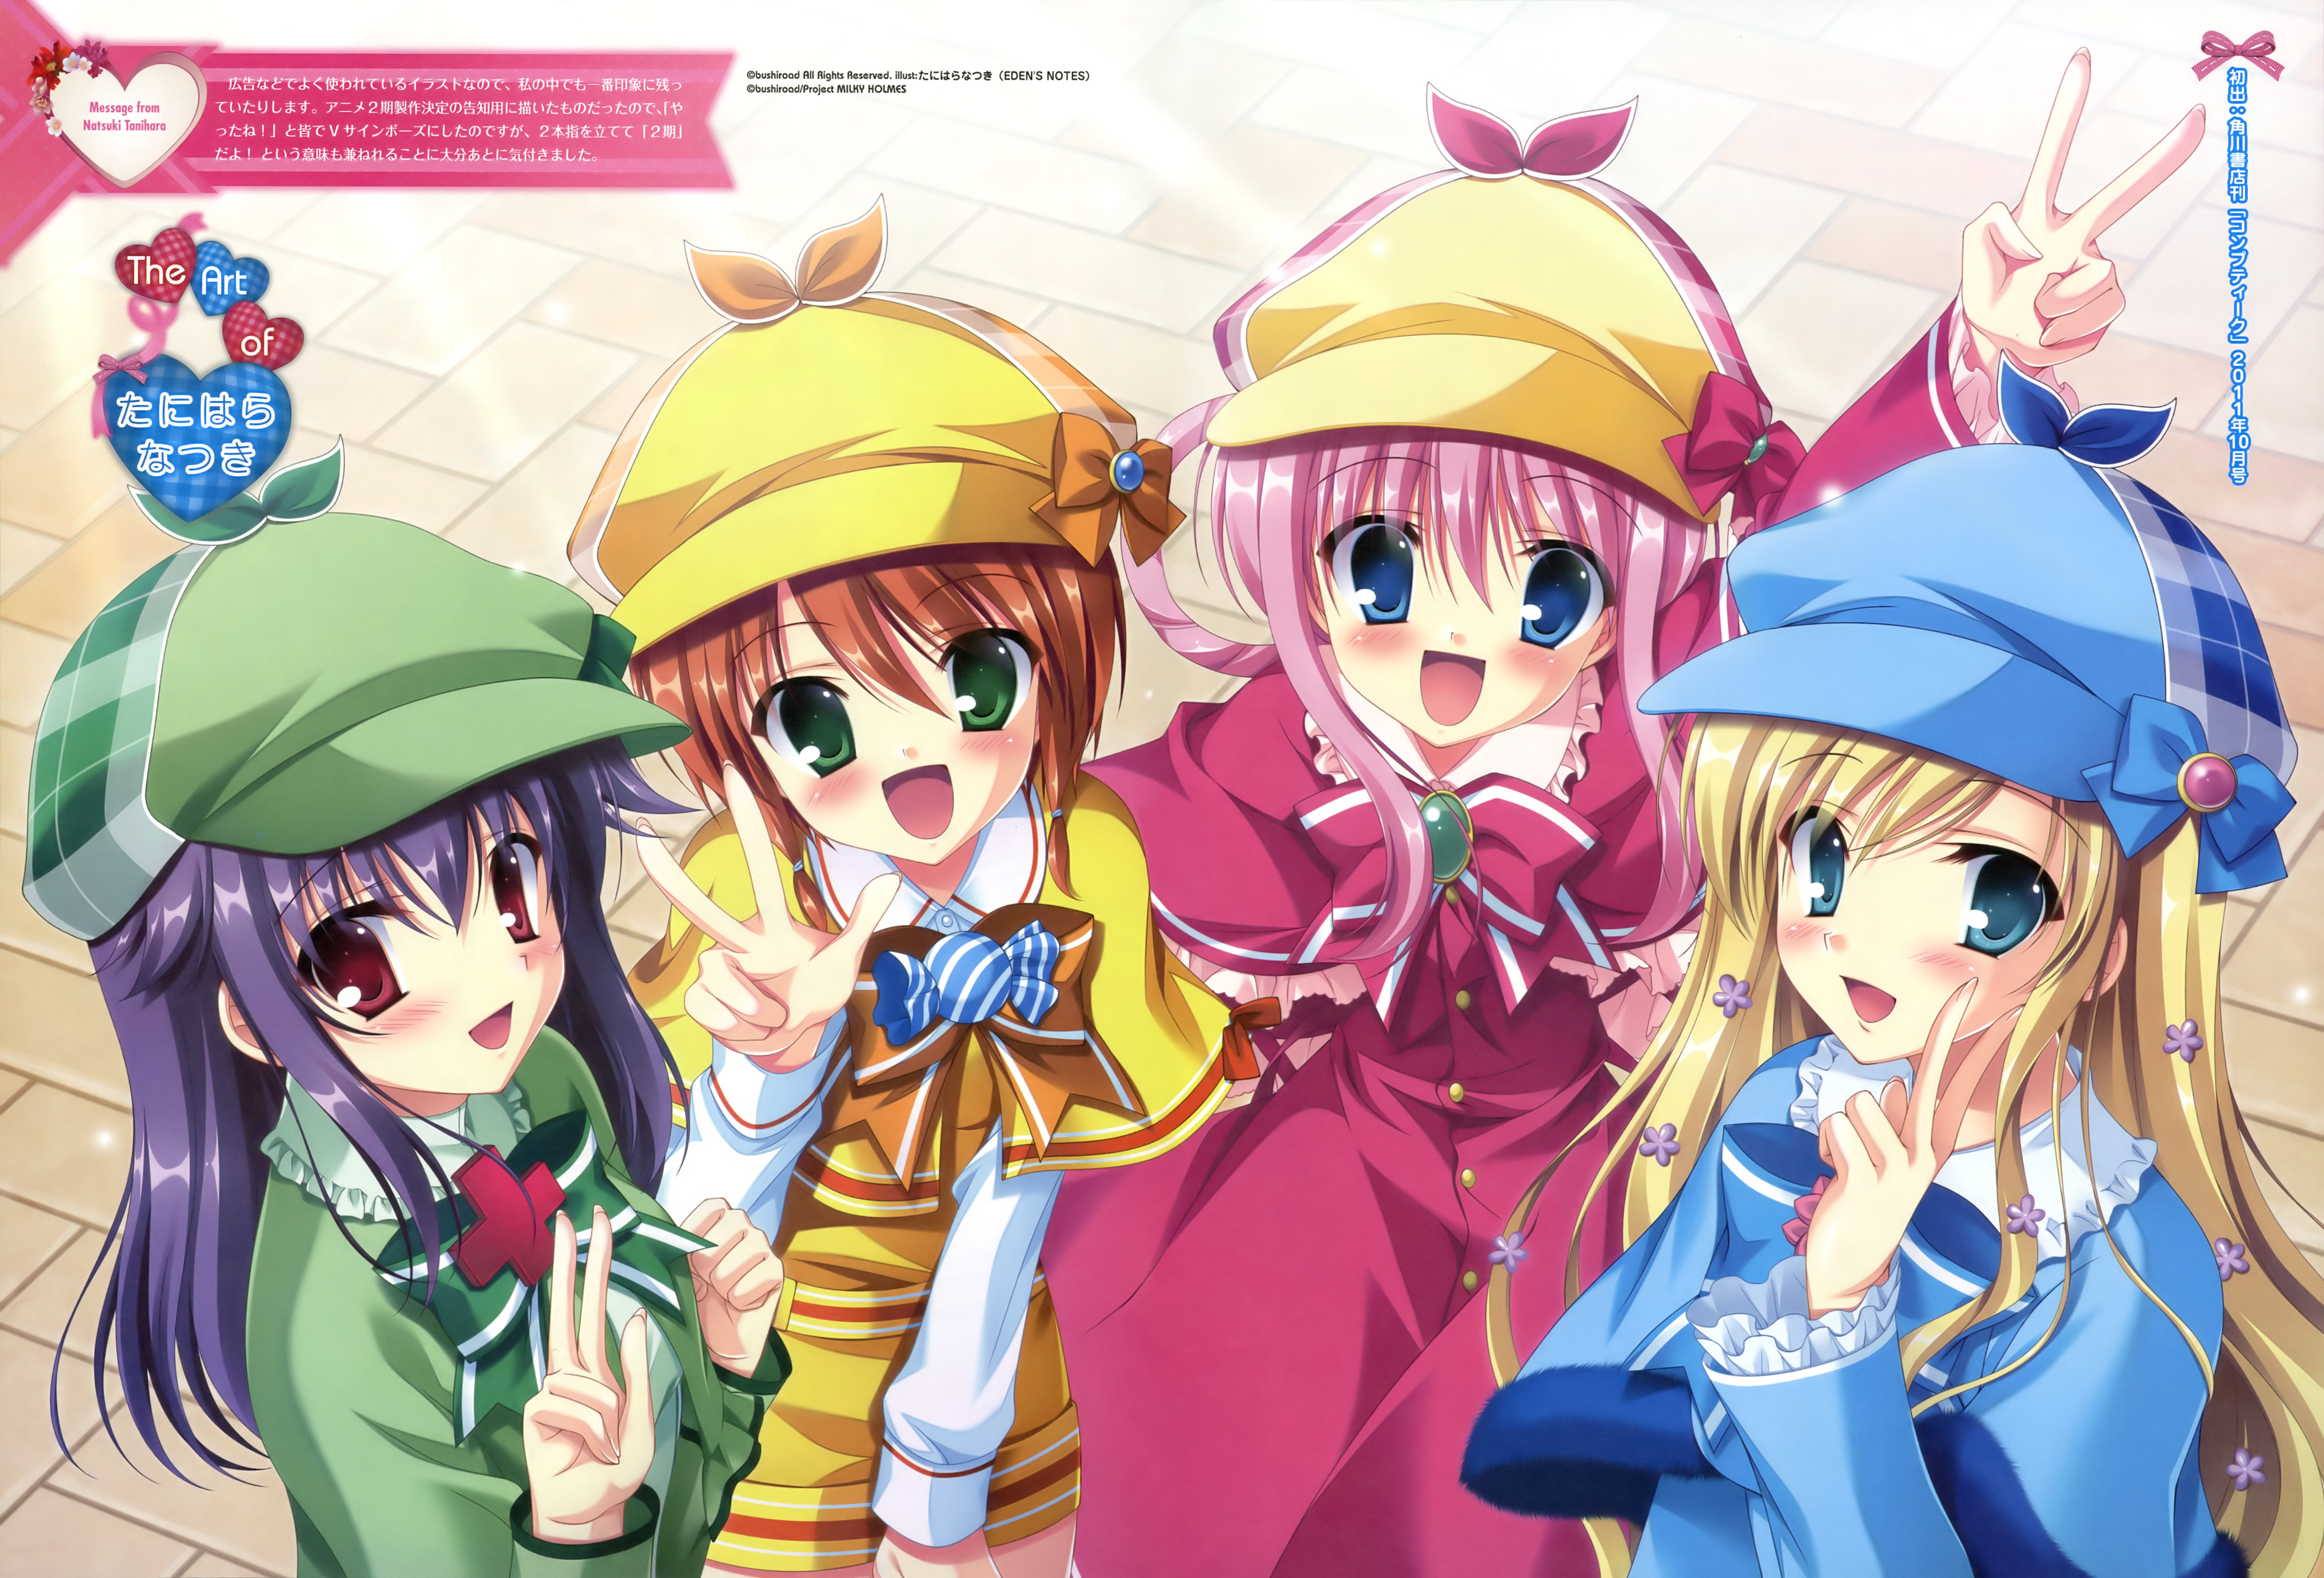 HQ Detective Opera Milky Holmes Wallpapers   File 2768.46Kb